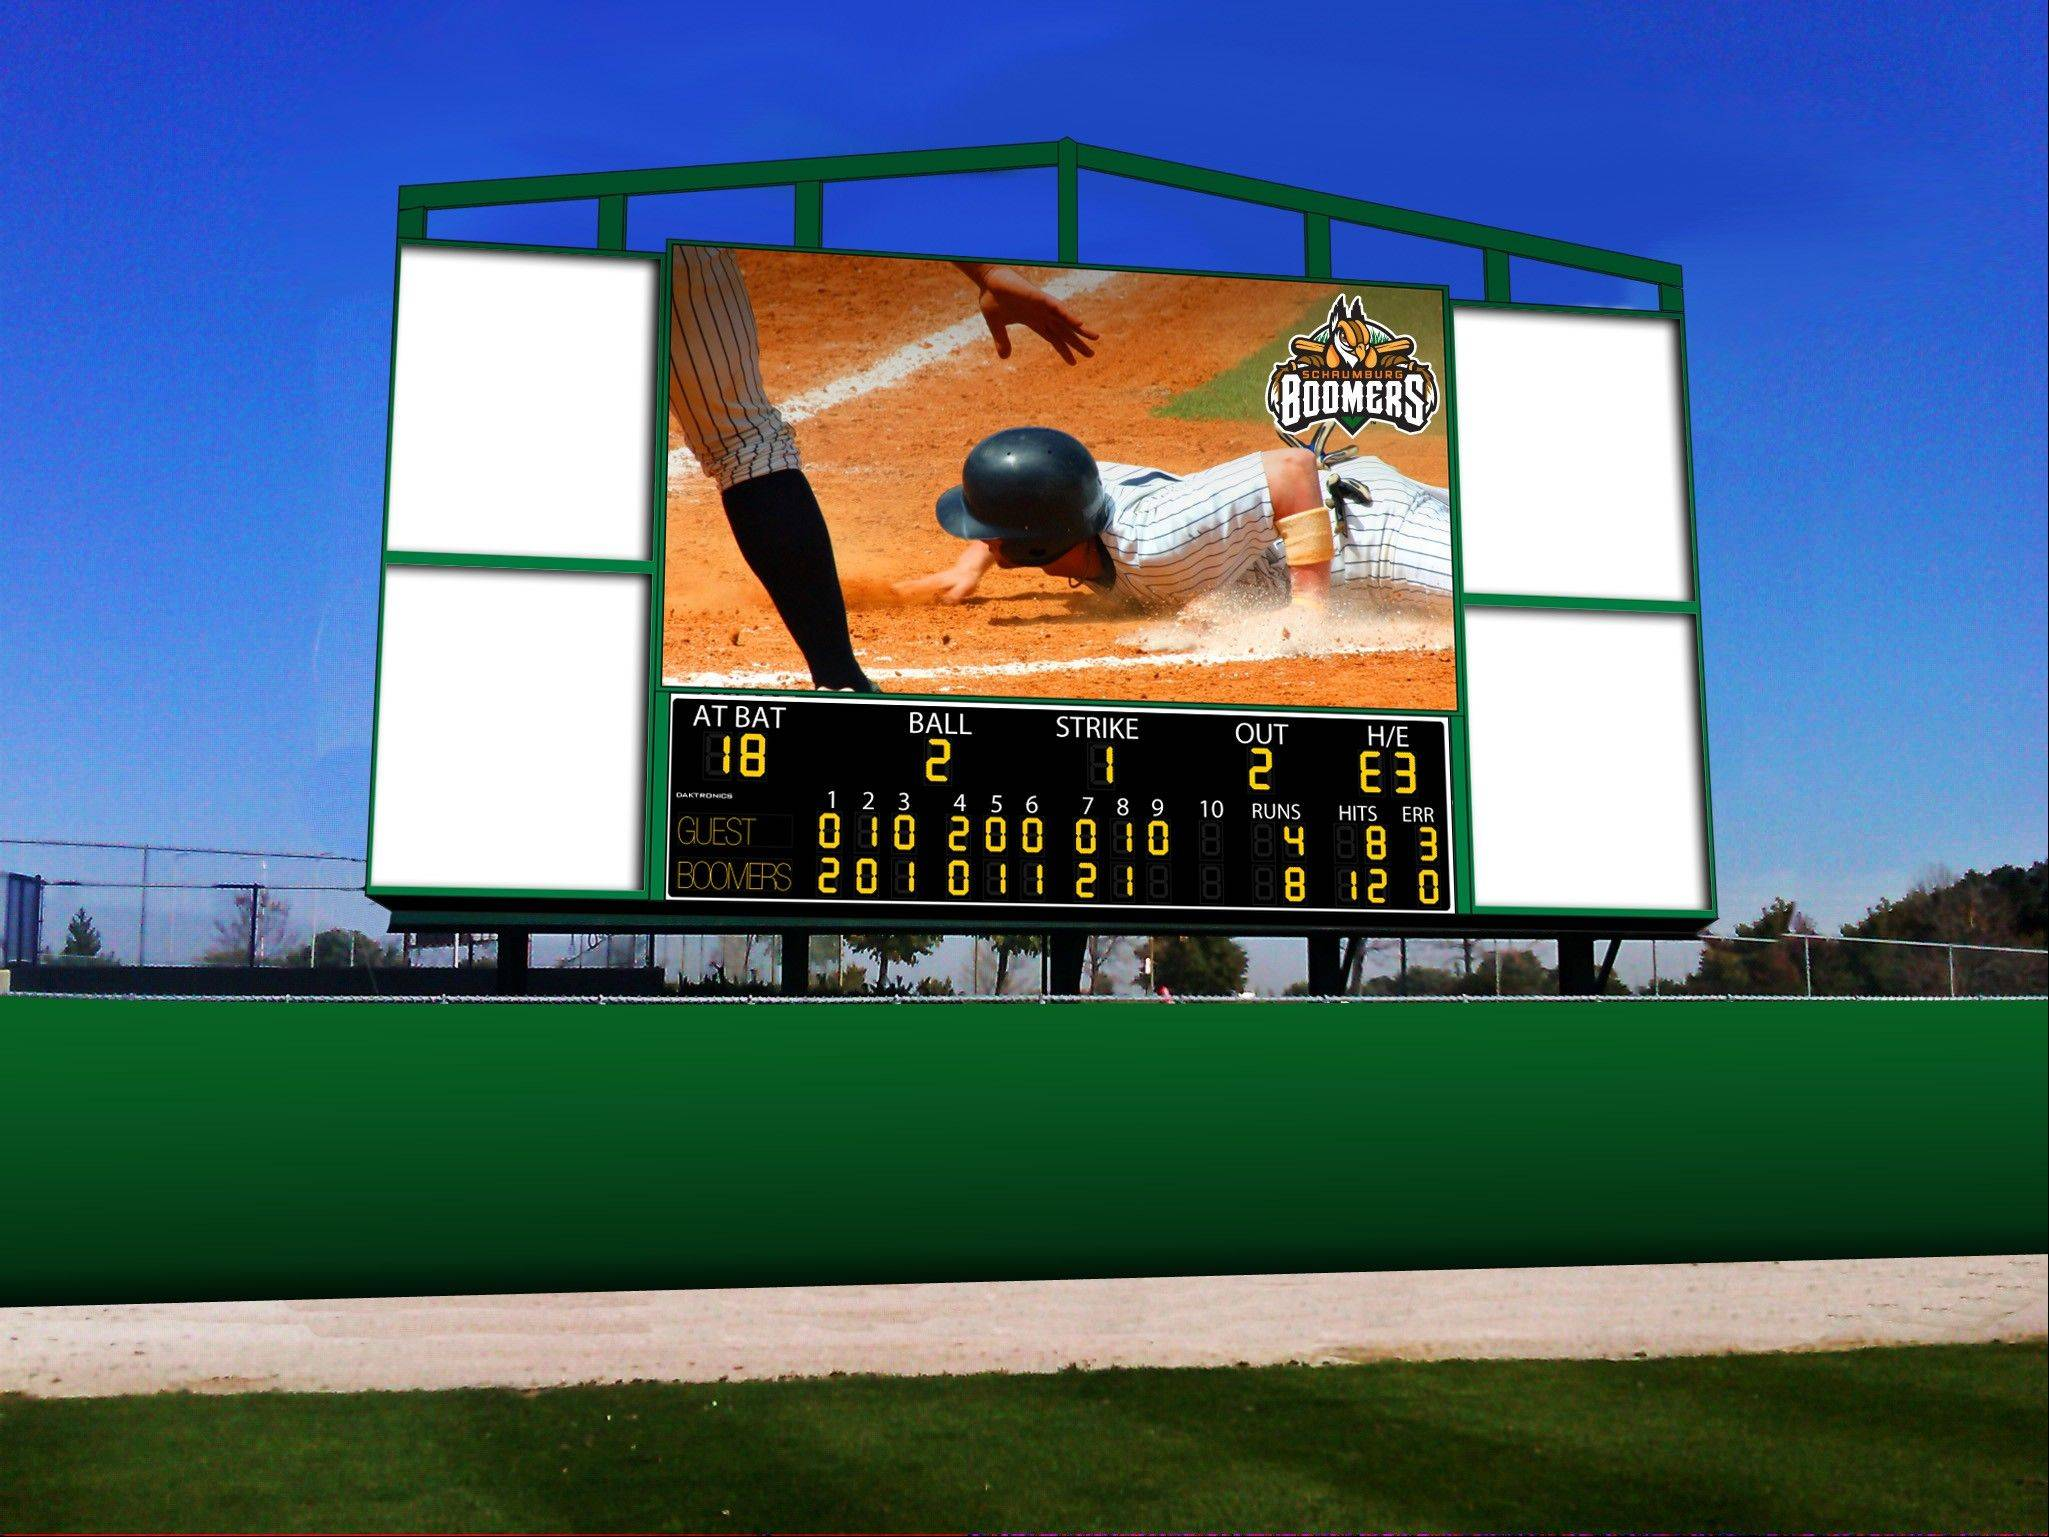 A rendering of the 450-square-foot videoboard the Schaumburg Boomers plan to install behind the left field wall of their stadium later this year. The new team is scheduled to begin playing at the Schaumburg ballpark in May.